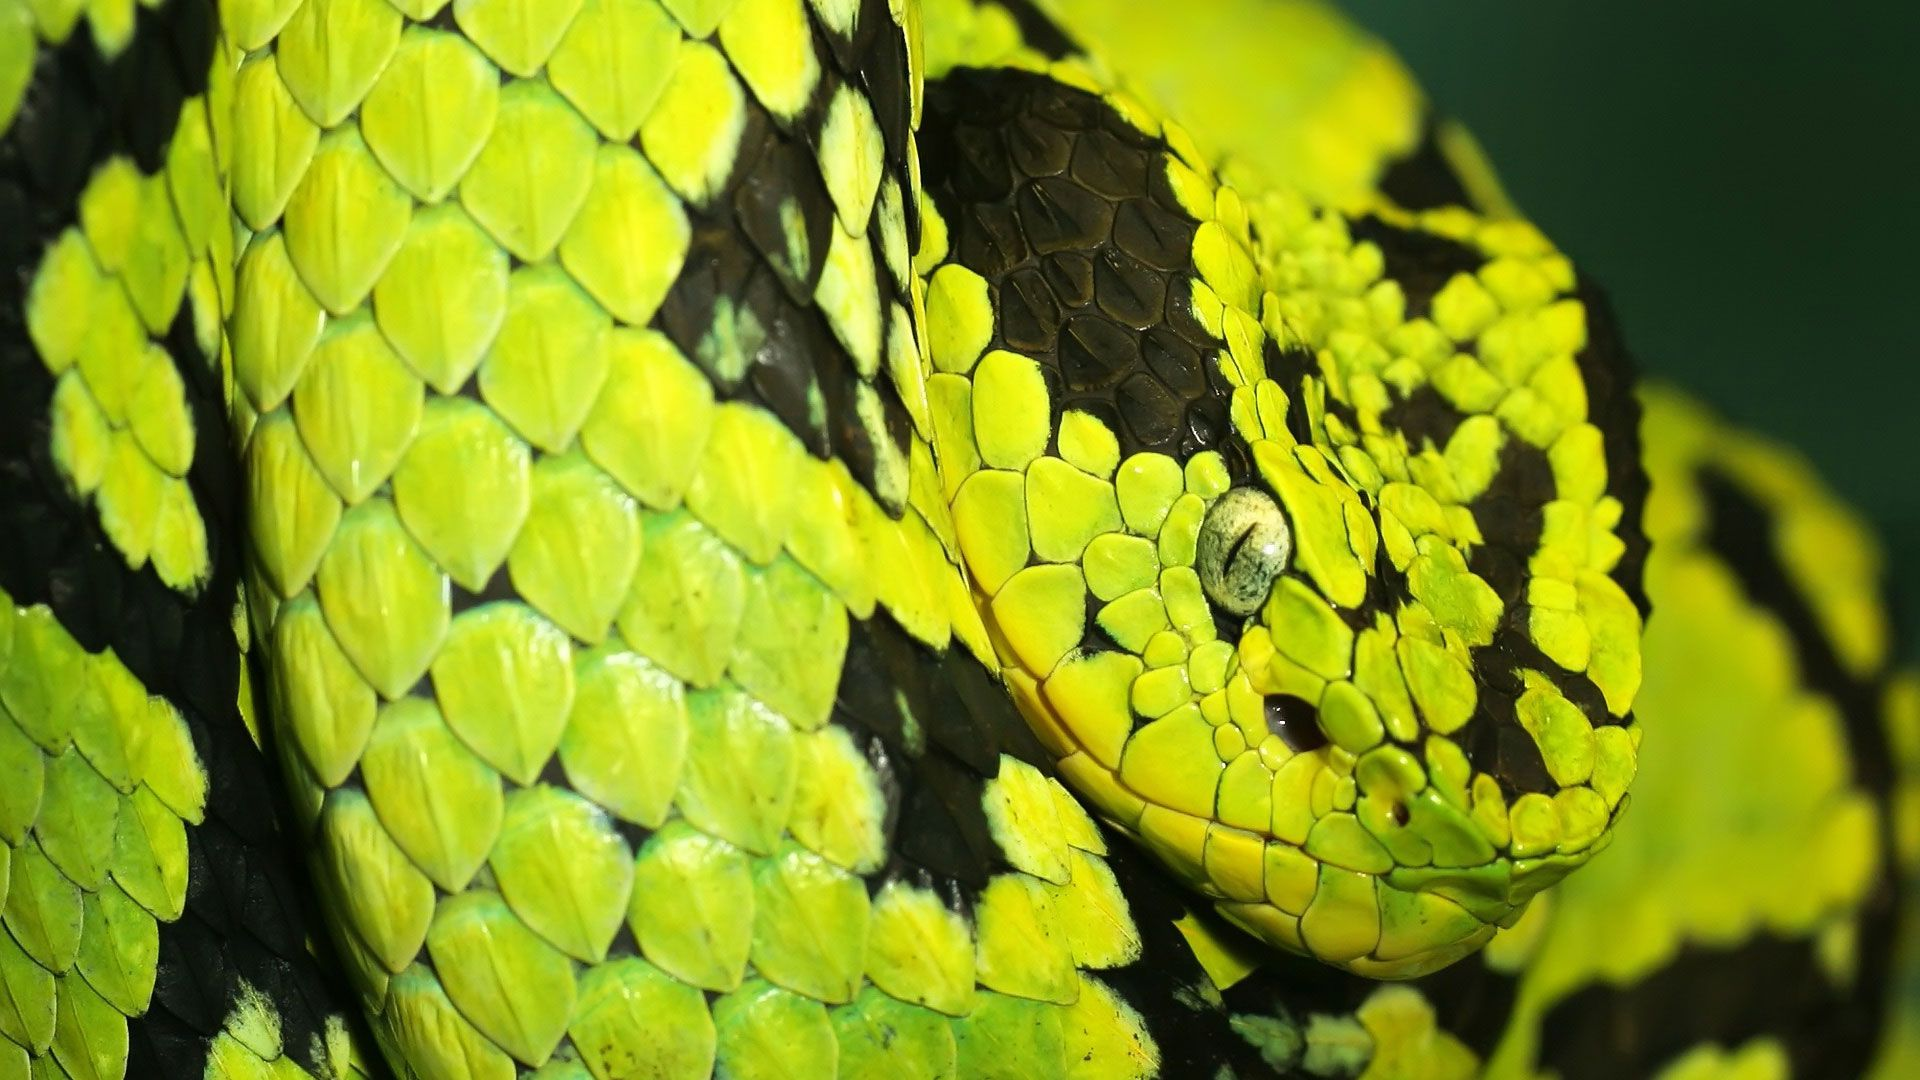 Of Wallpapers Images Snake